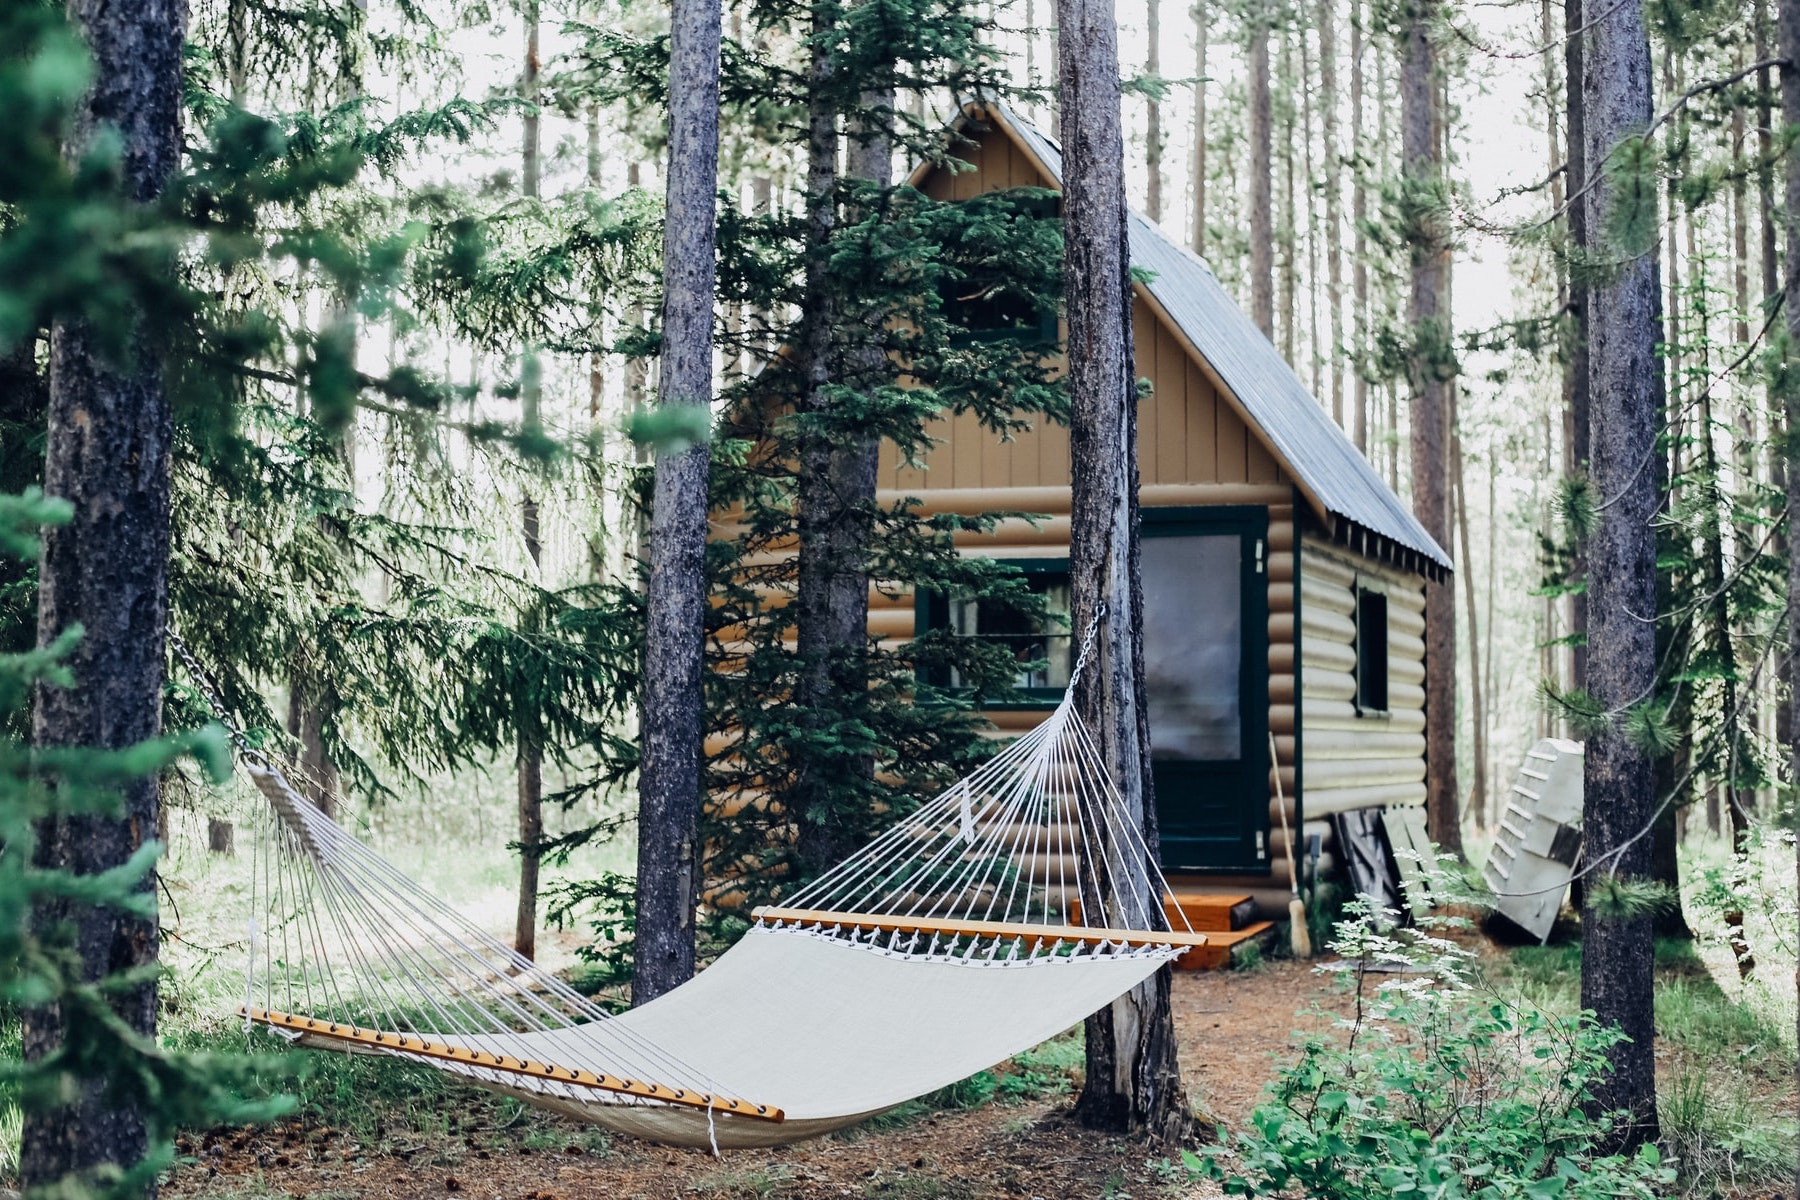 A photo of a cabin for an article about Getaway cabins and reconnecting with nature. (Photo by Cara Fuller from Unsplash)